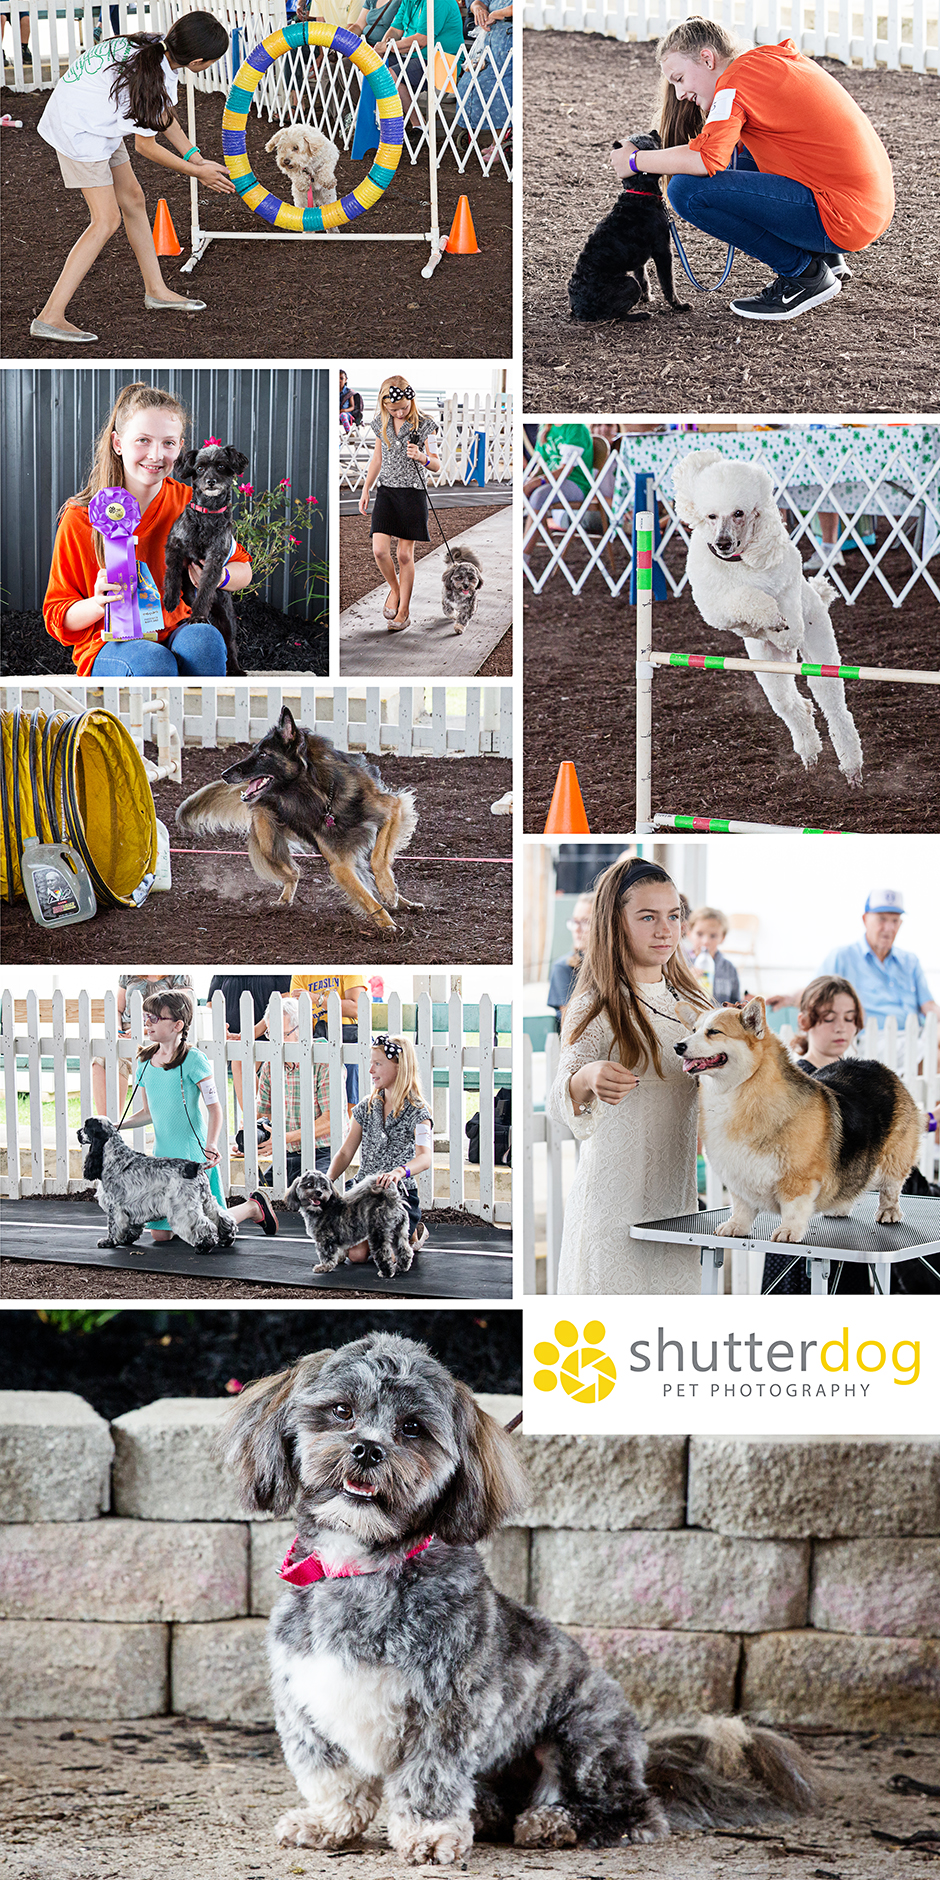 more favorite images from the 2017 4-H dog show at the Great Frederick Fair